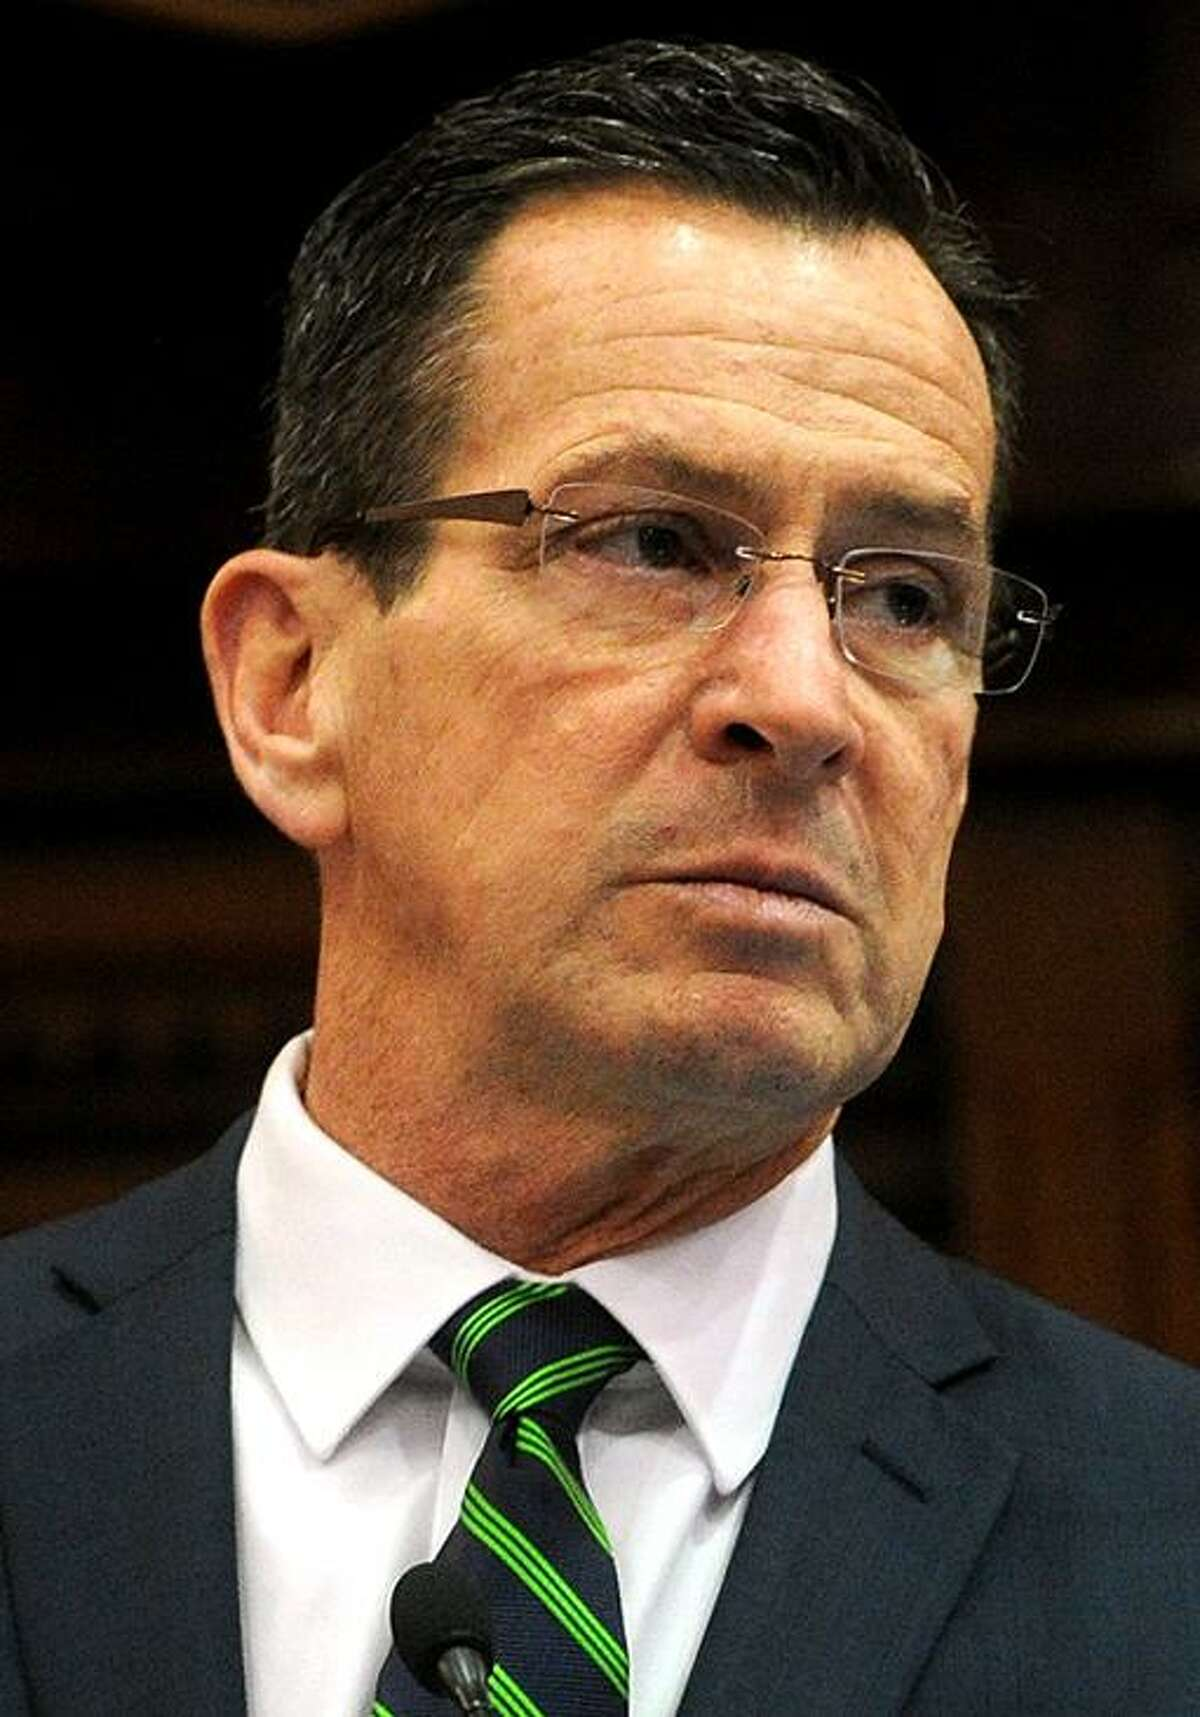 Gov. Dannel P. Malloy's deal with state employee unions was approved unanimously by all bargaining units, with an 83-17 percent margin of victory in the popular vote.